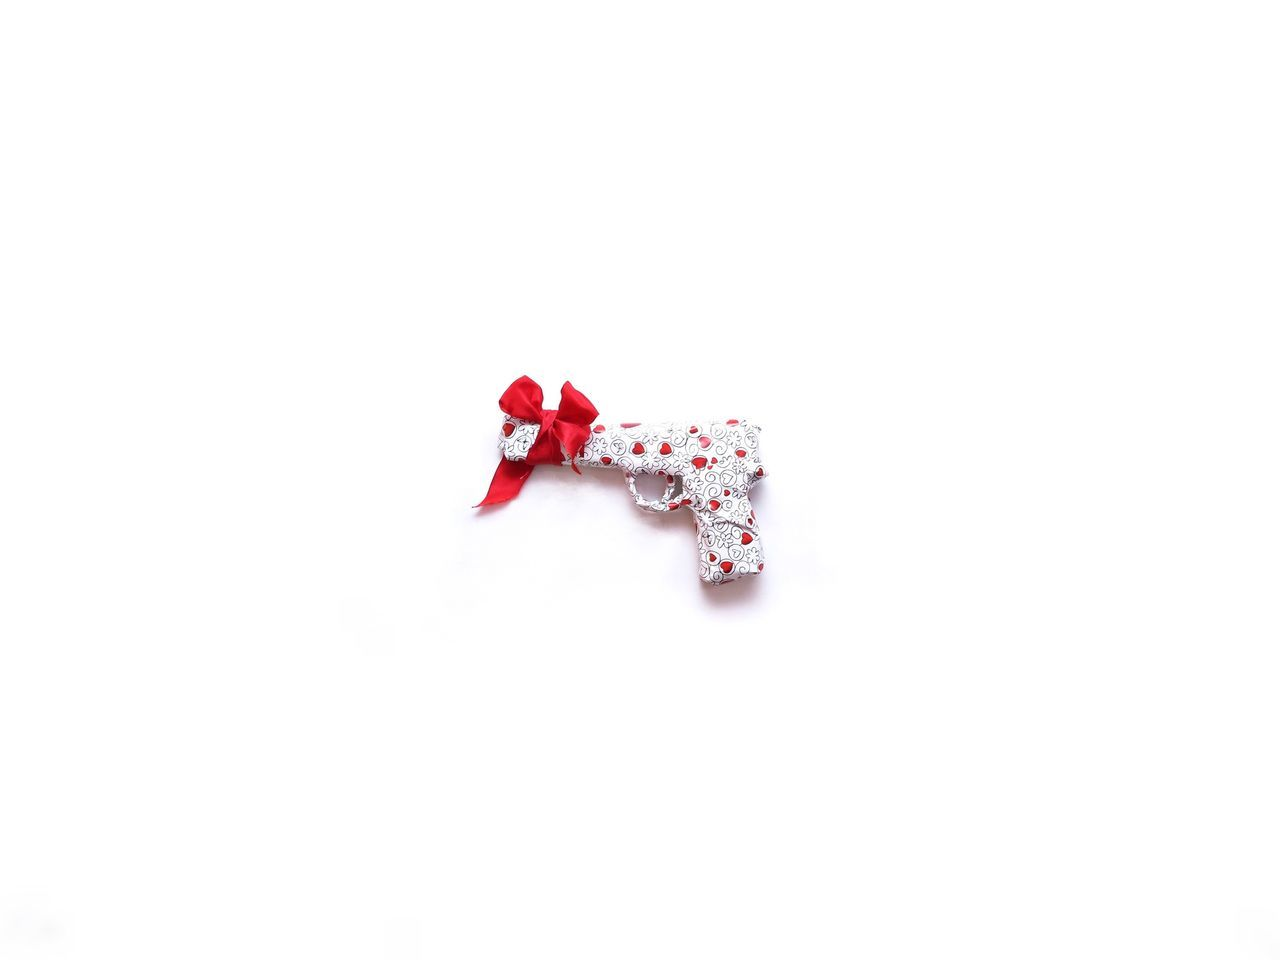 Studio Shot White Background Red Single Object Heart Heart Shape Pistol Gift Present Still Life Creativity Loop No People Red Loop Packed Up Wrapping Paper Paper With Love Give Birthday Christmas Form Shape Secret